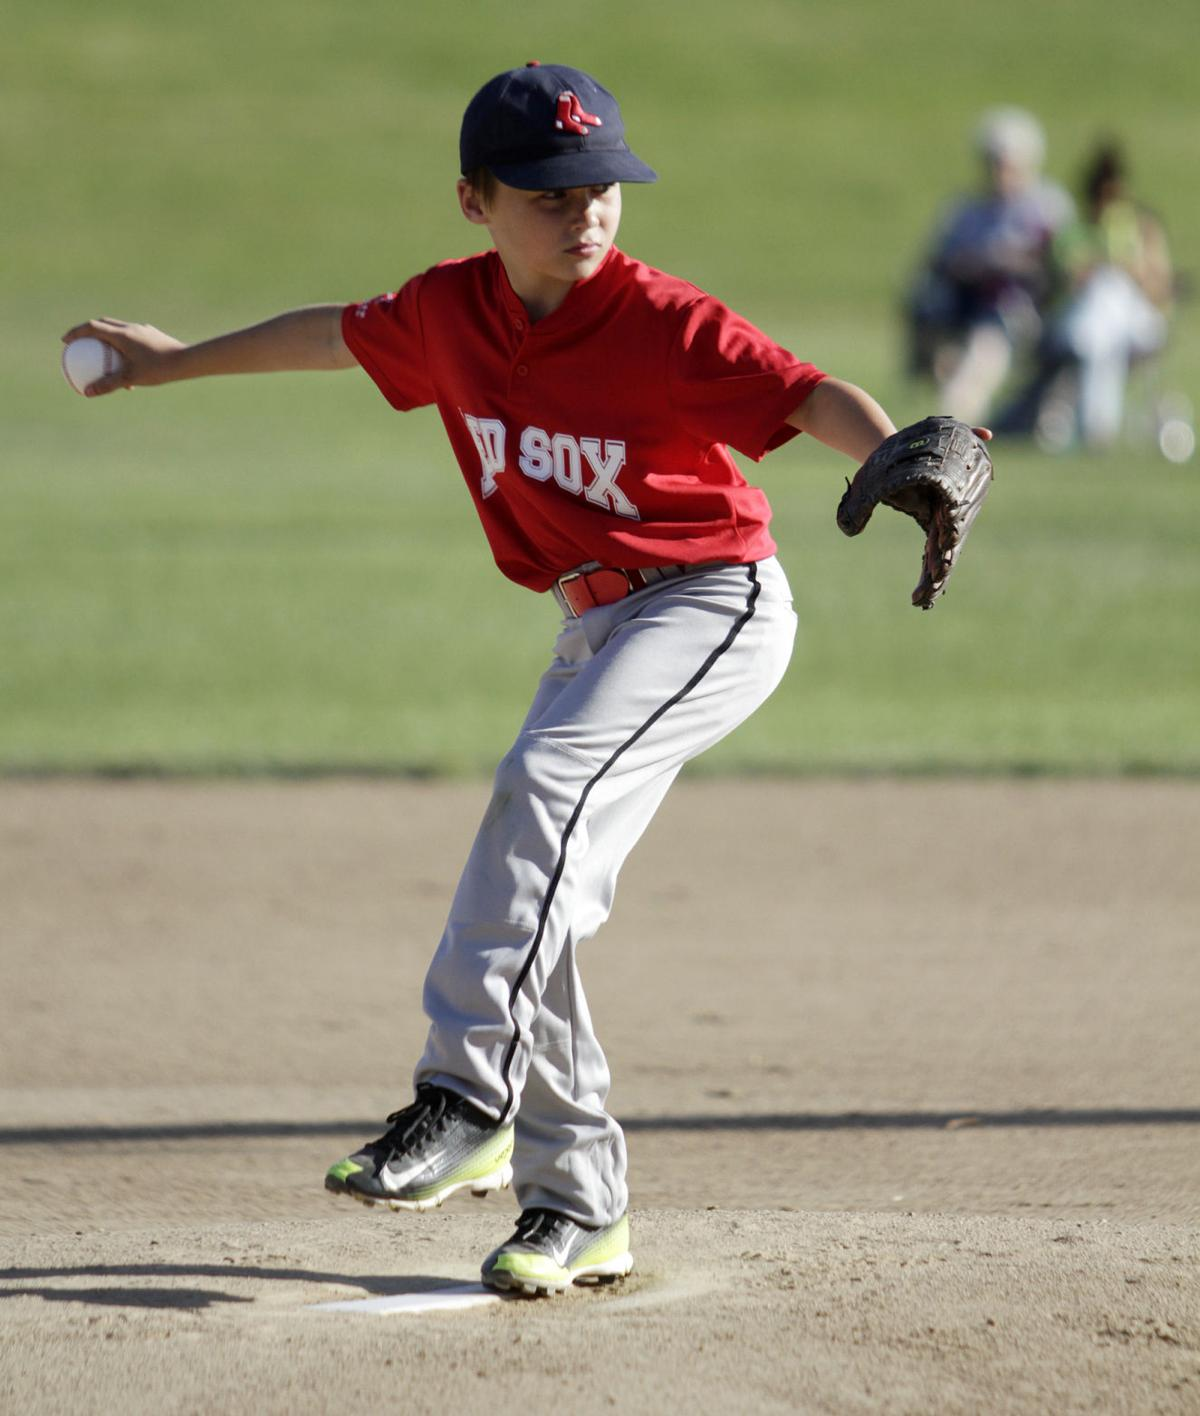 Youth Baseball: Red Sox Outhit Rockies To Win AA